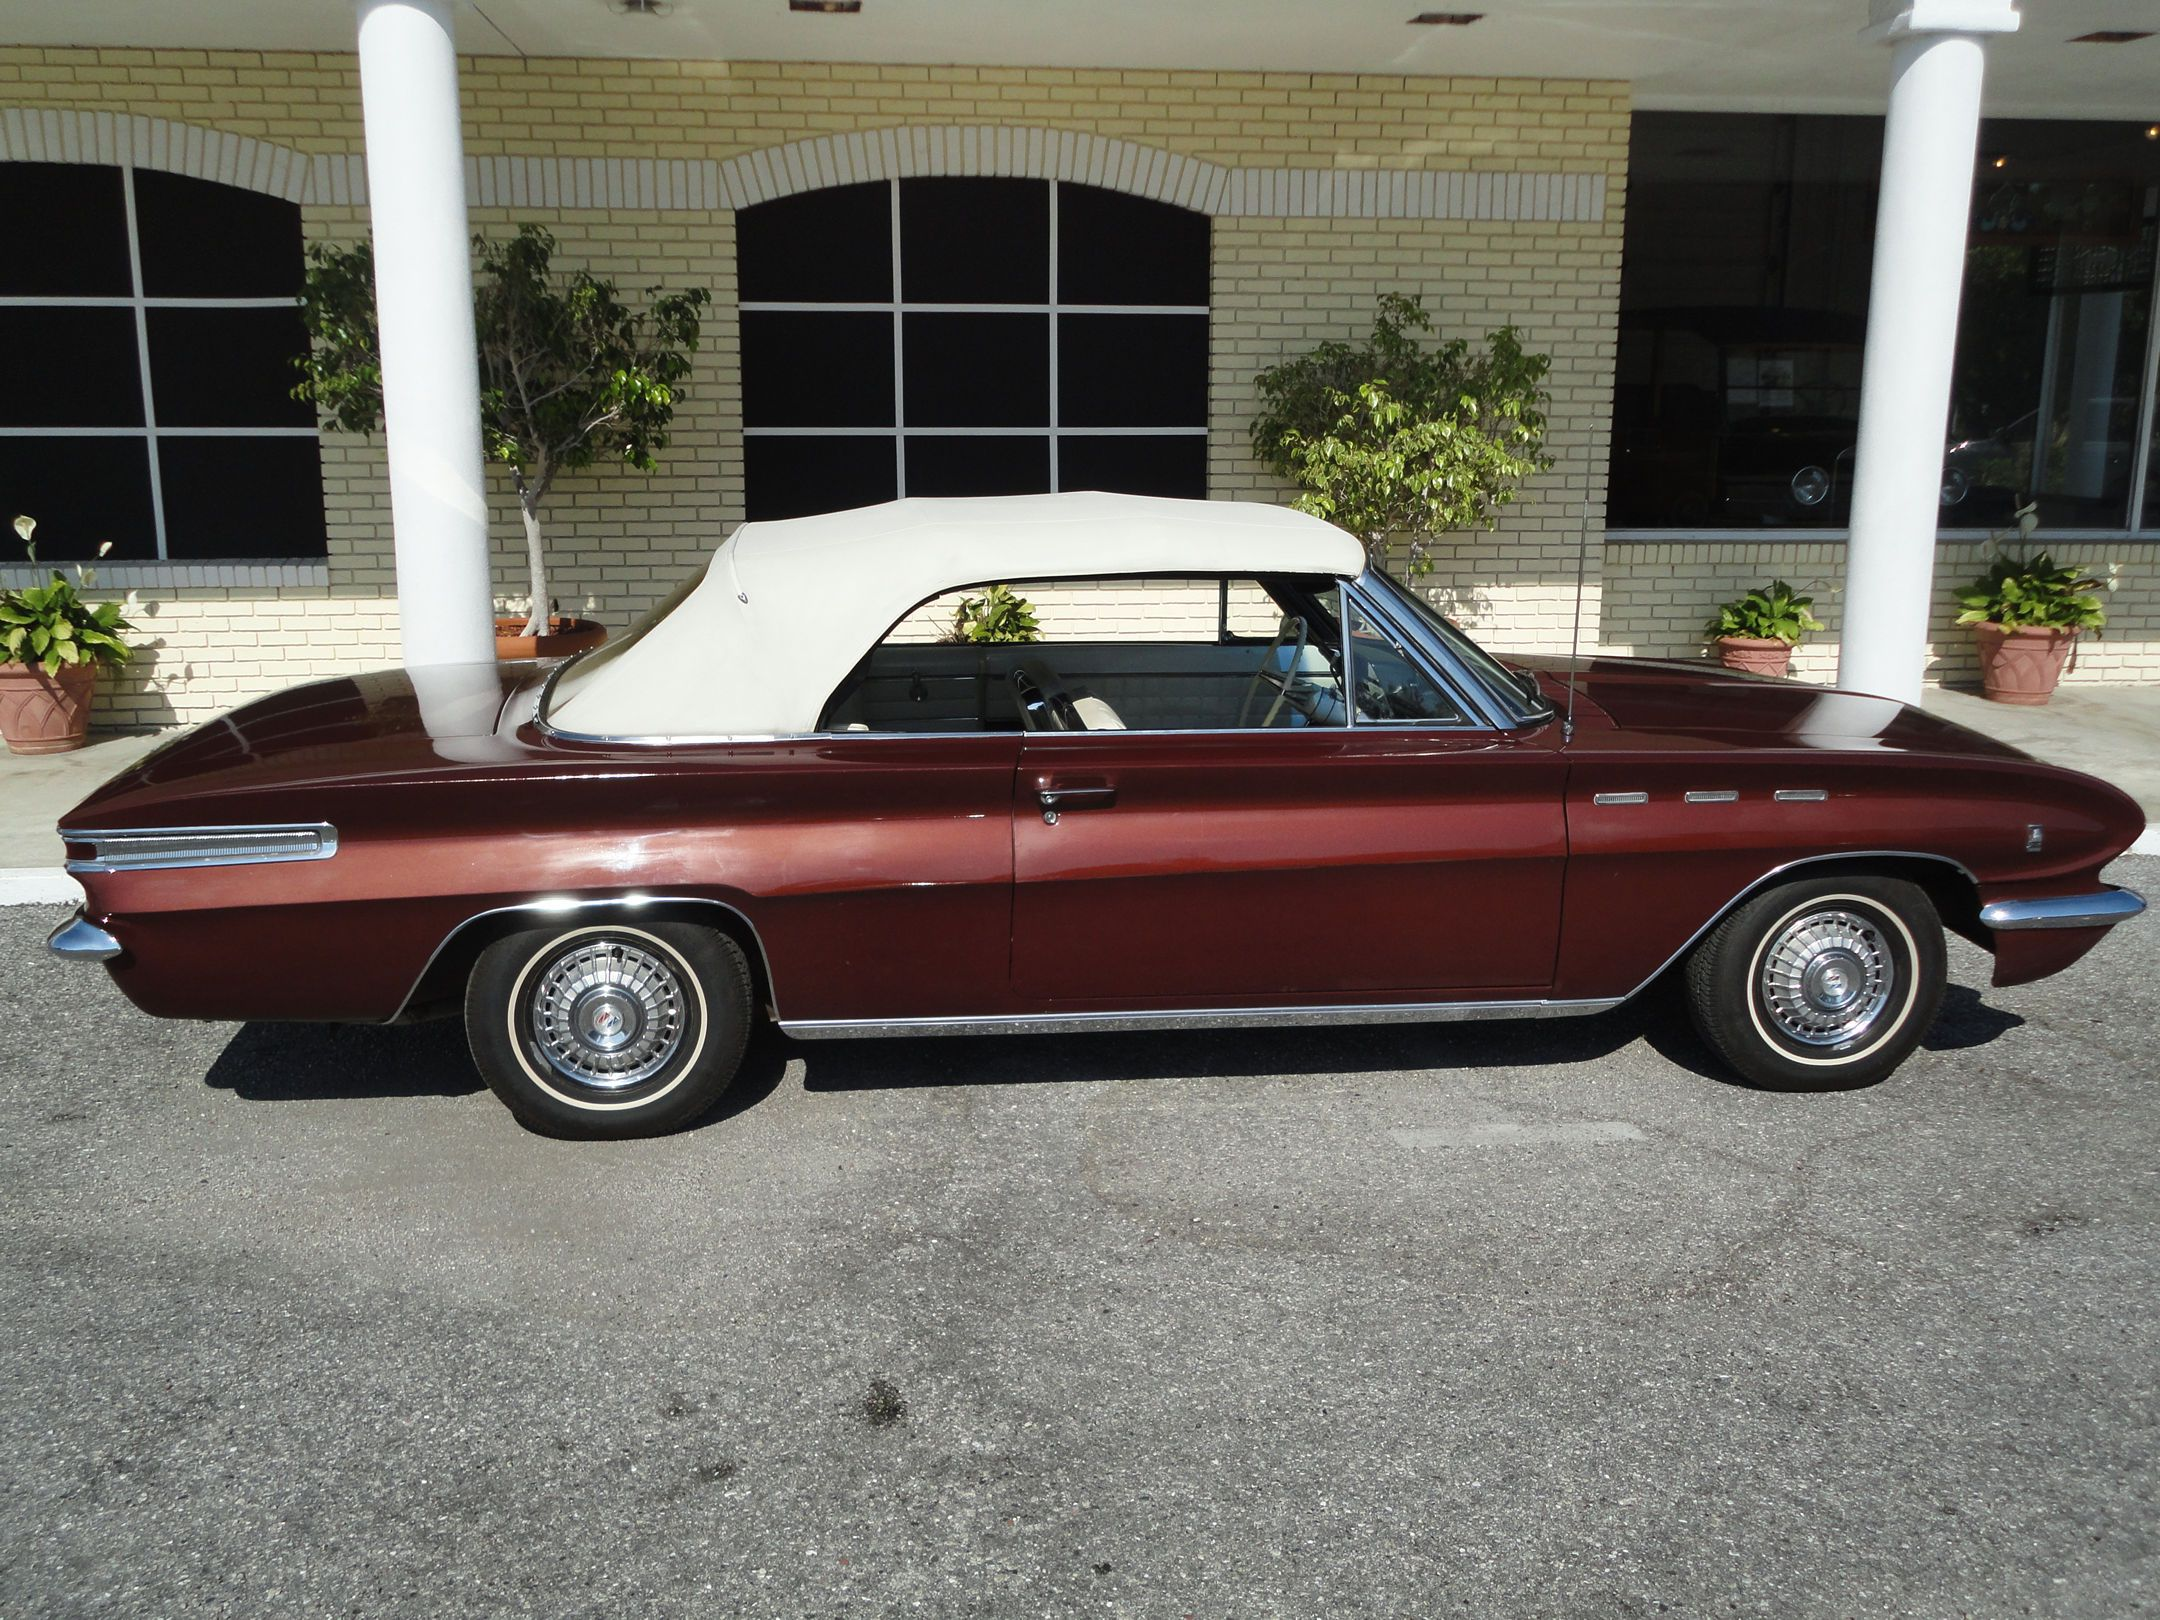 1962 buick skylark convertible vehicles general motors General motors convertibles